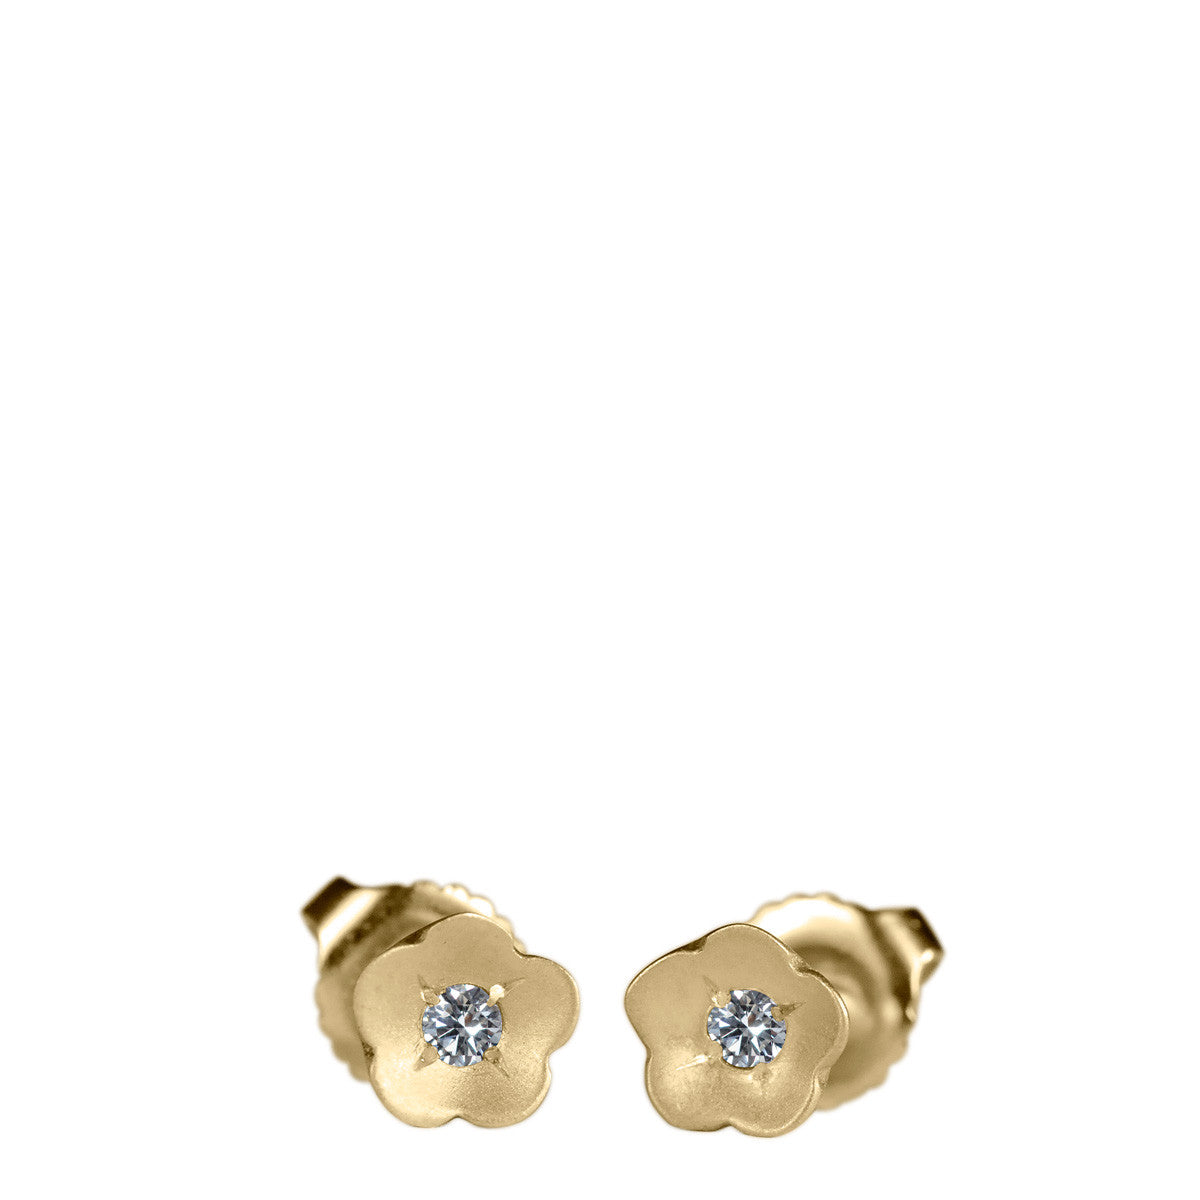 10K Gold Buttercup Stud Earrings with Diamonds